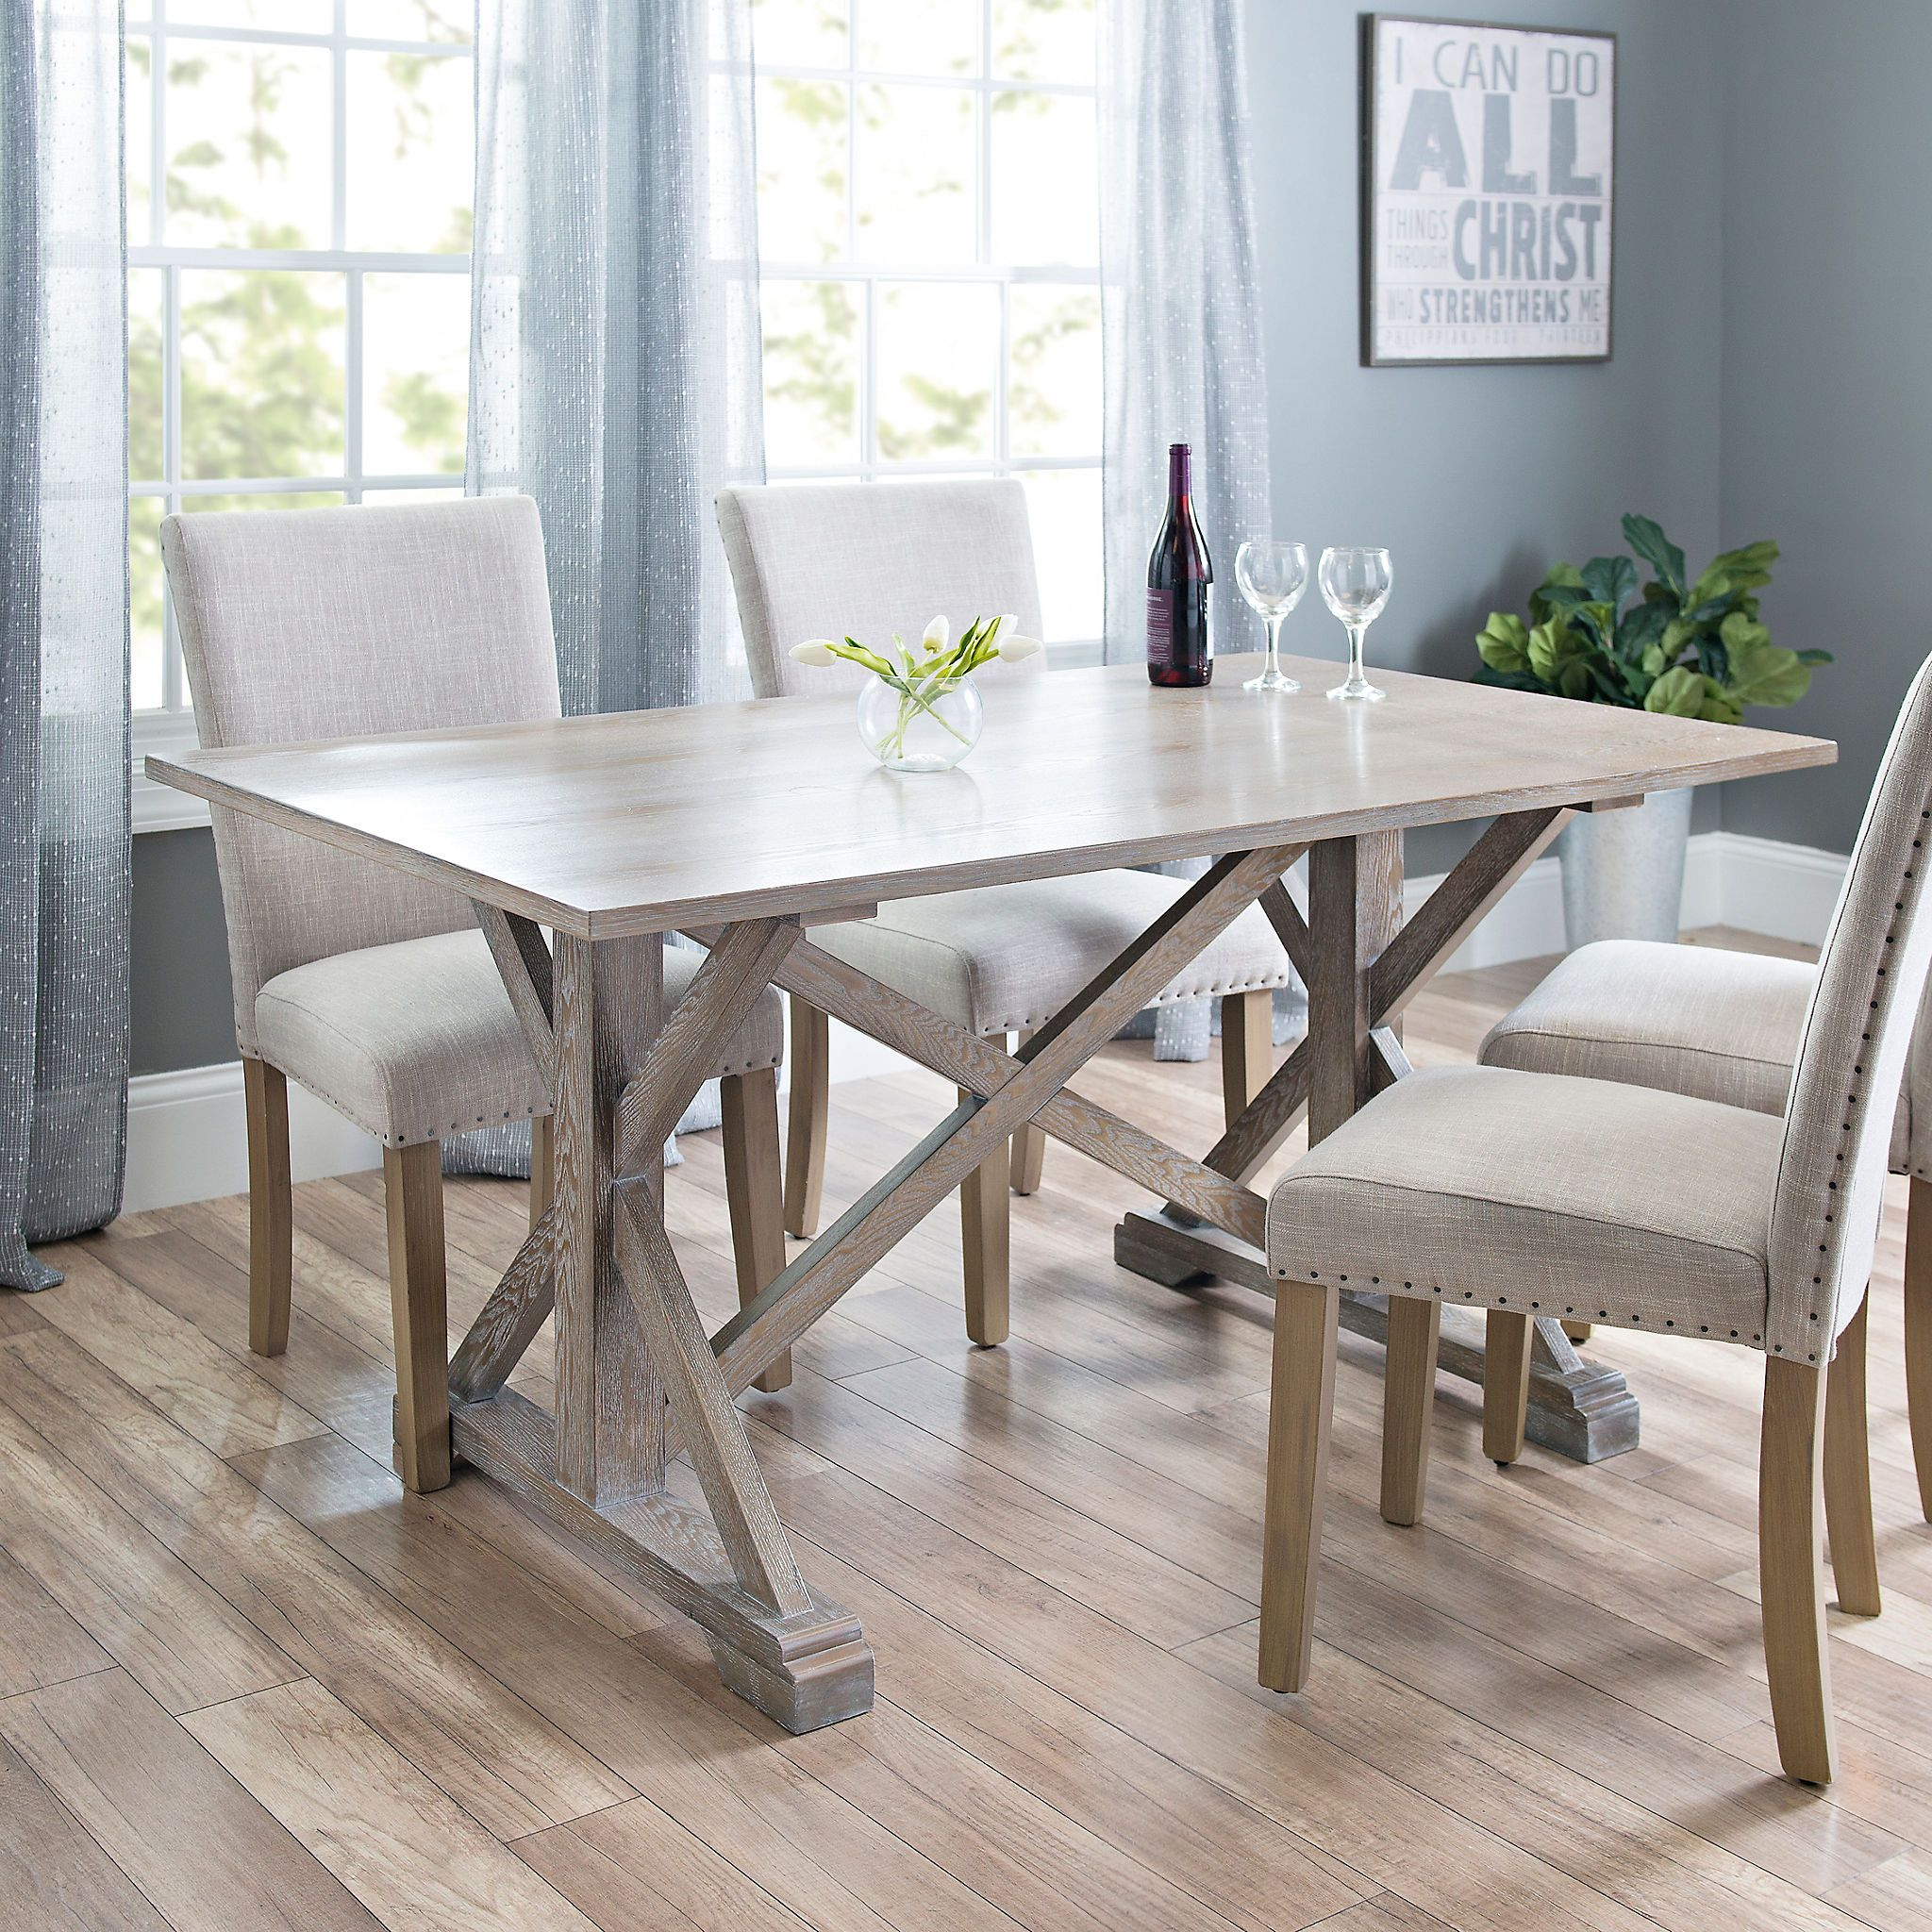 Annalise Distressed Gray Oak Dining Table Kirklands Grey Dining Tables Oak Dining Table Dining Room Small